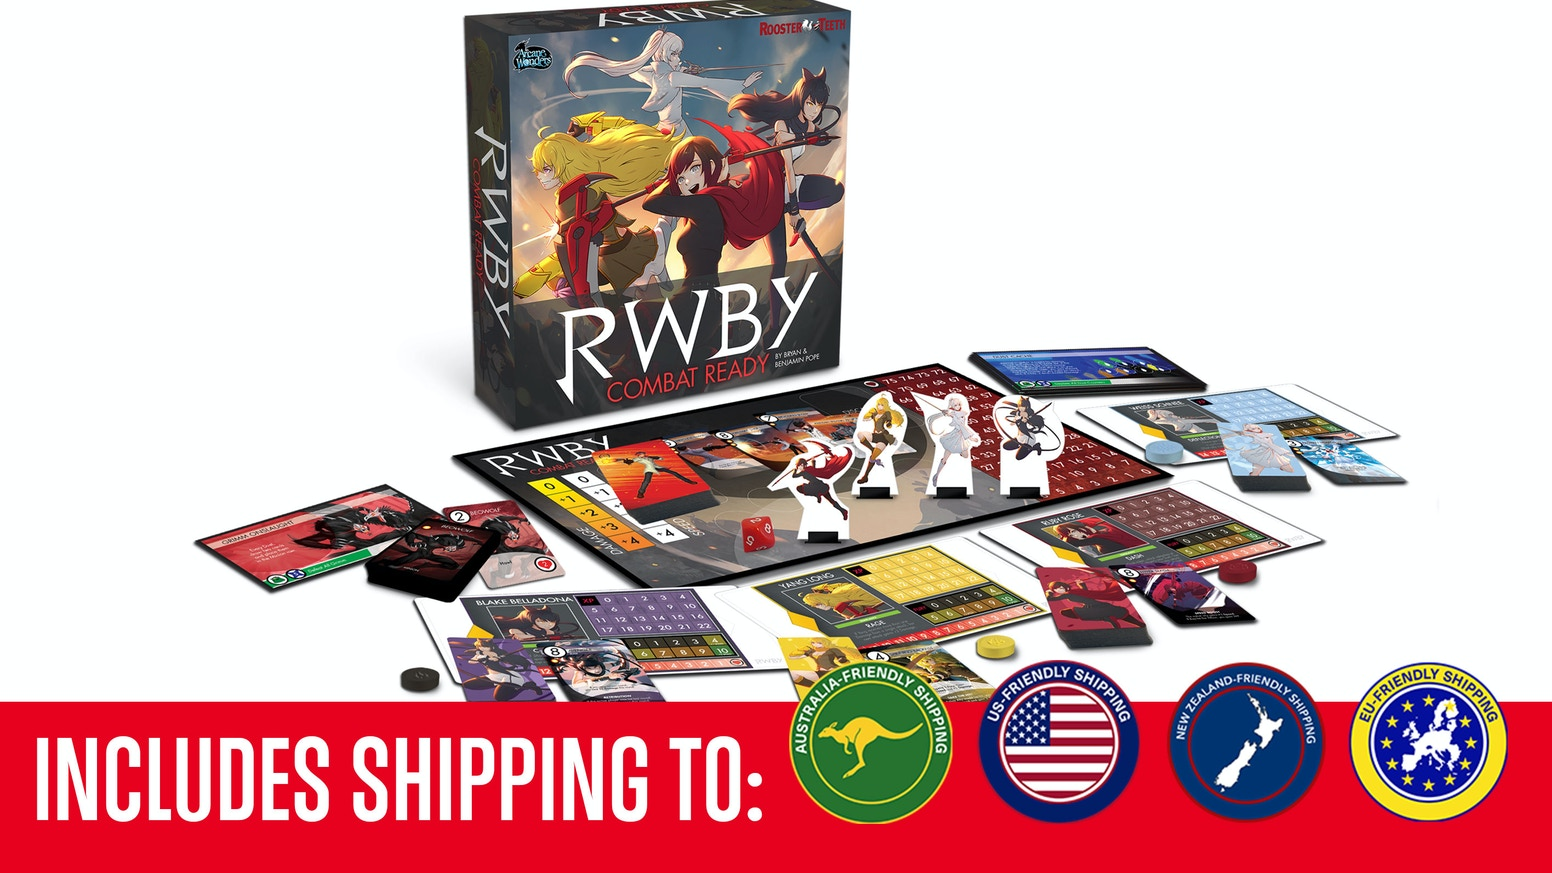 rwby combat ready by rooster teeth kickstarter